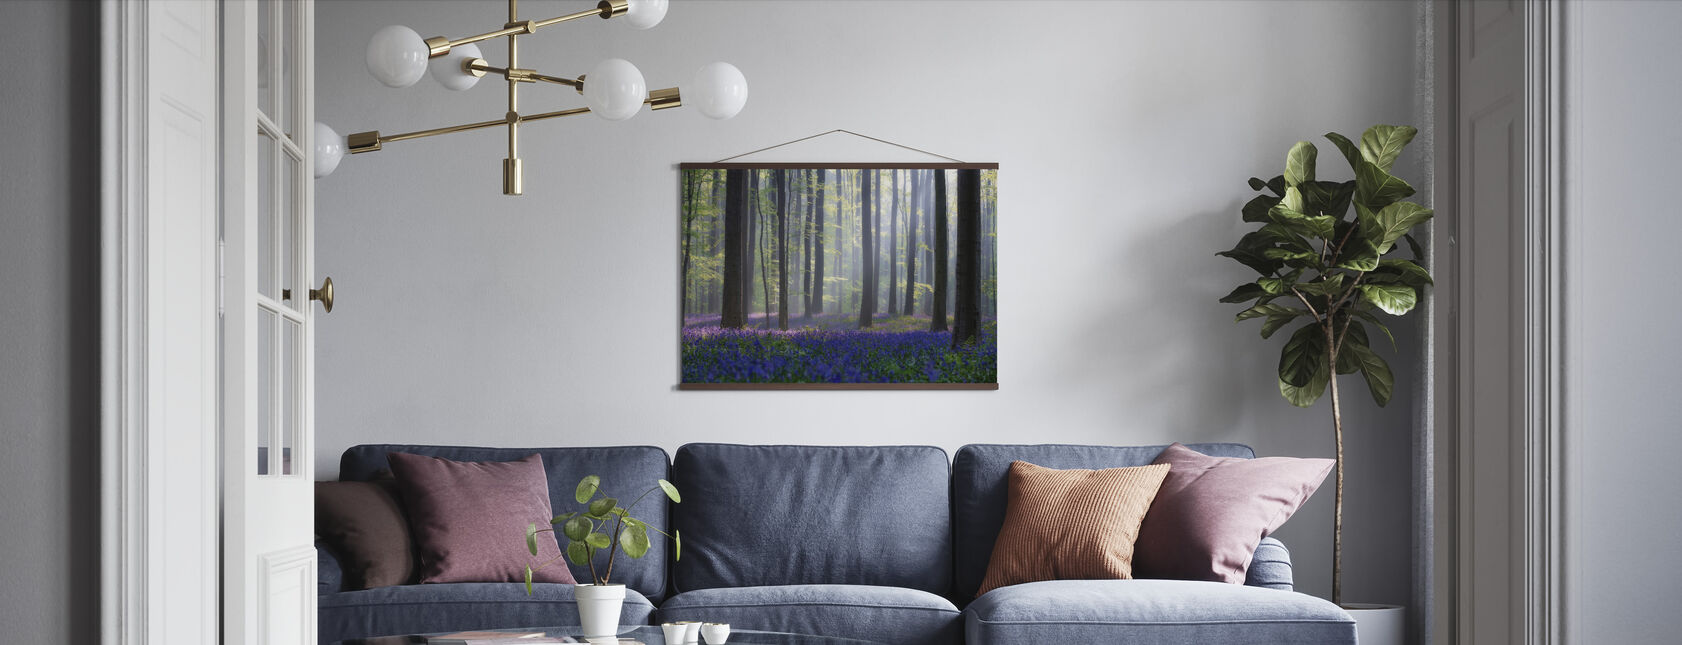 Bluebells - Poster - Living Room